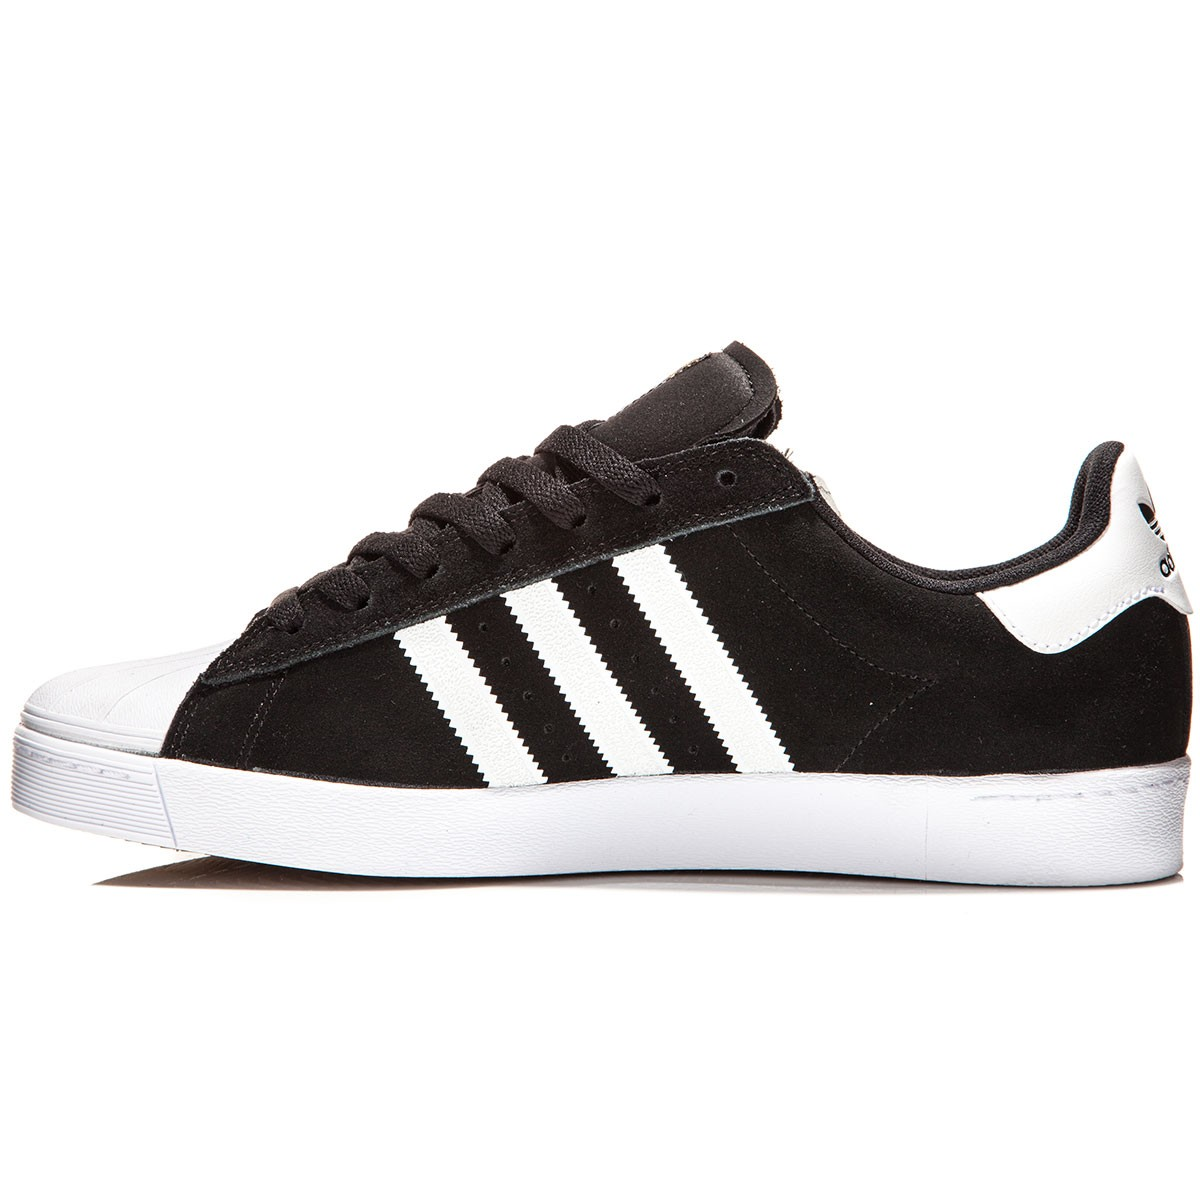 adidas shoes superstar black and gold. adidas shoes superstar black and gold